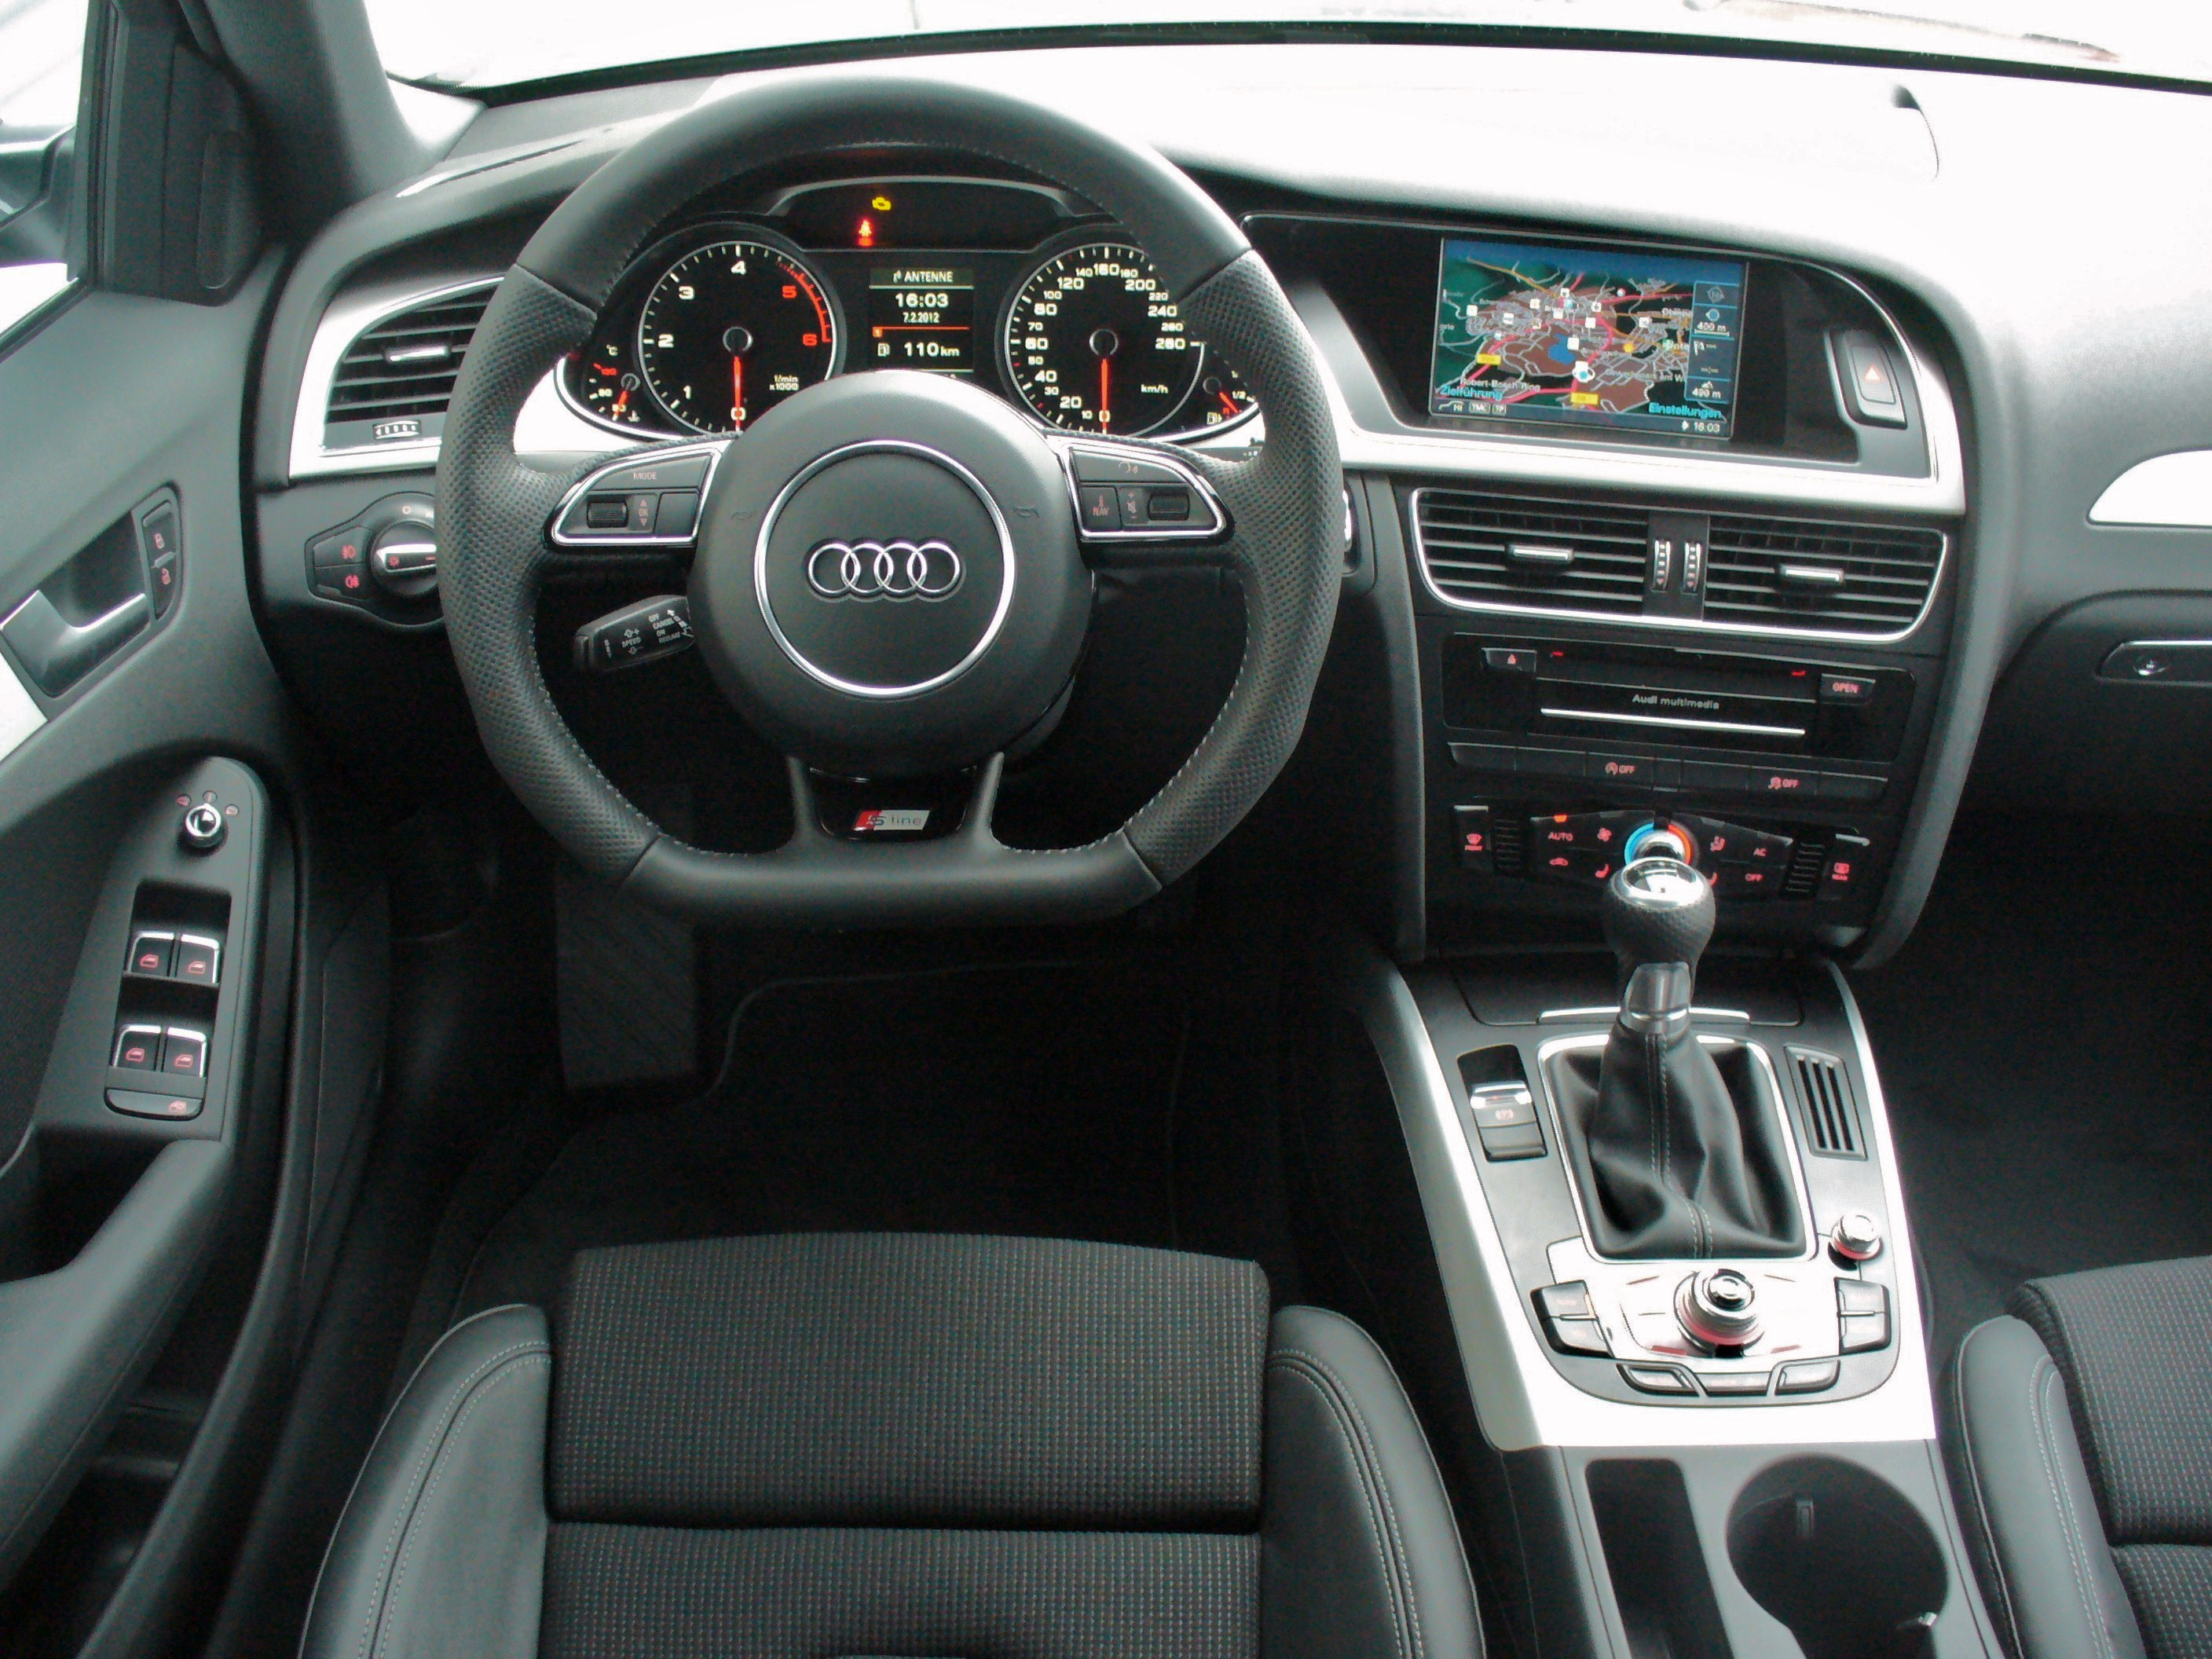 fileaudi a4 b8 facelift avant ambition s line 20 tdi daytonagrau interieur jpg